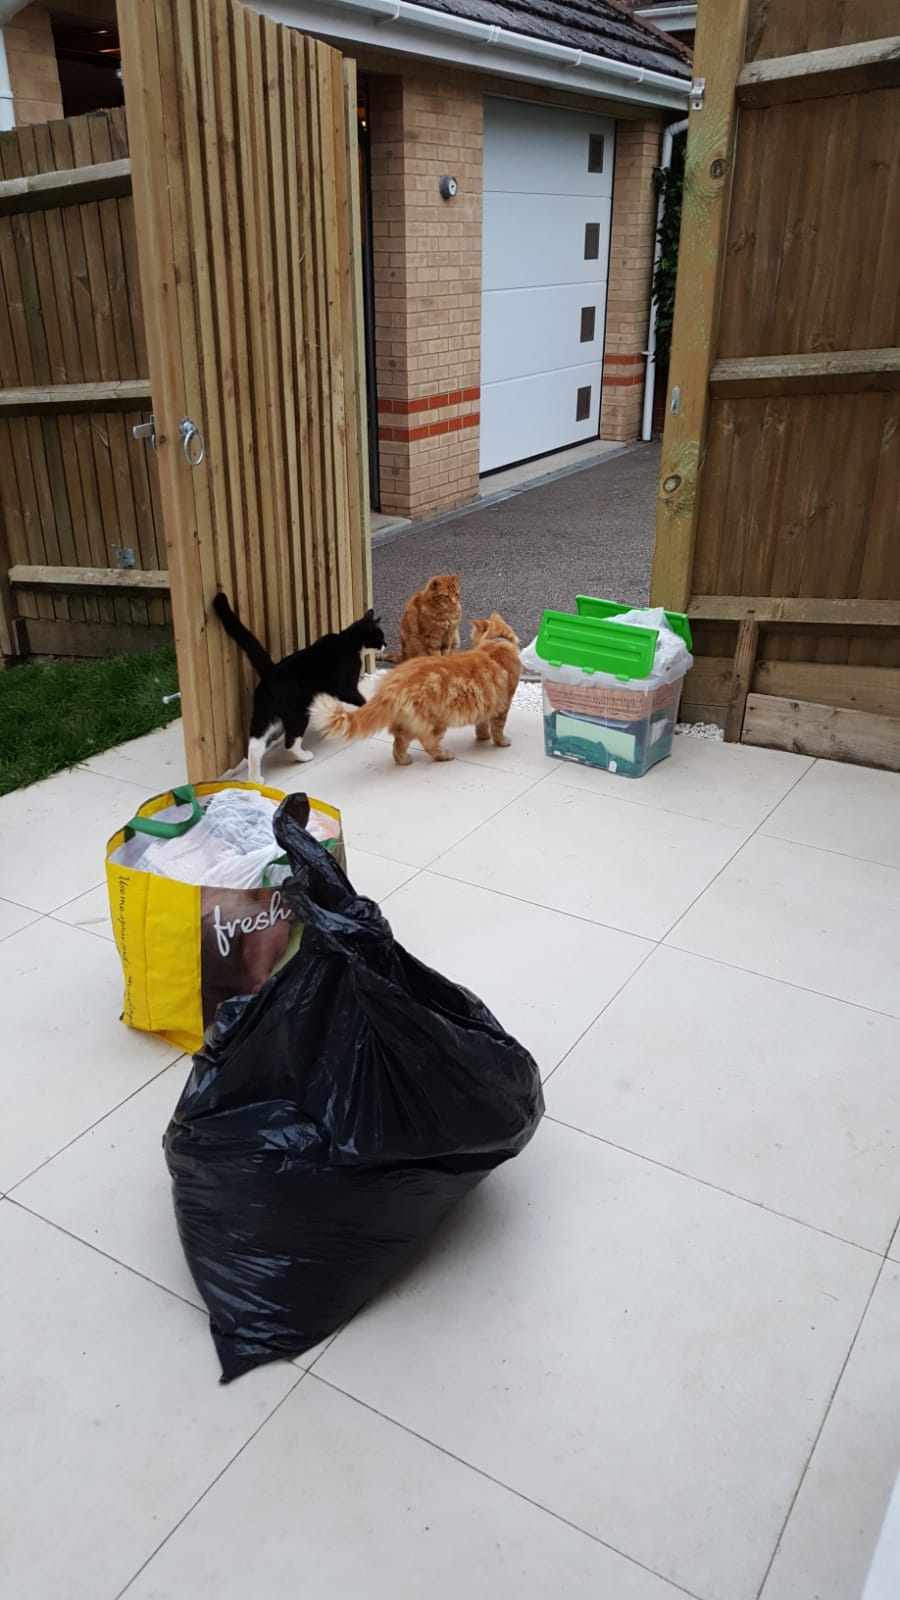 The Cats helping